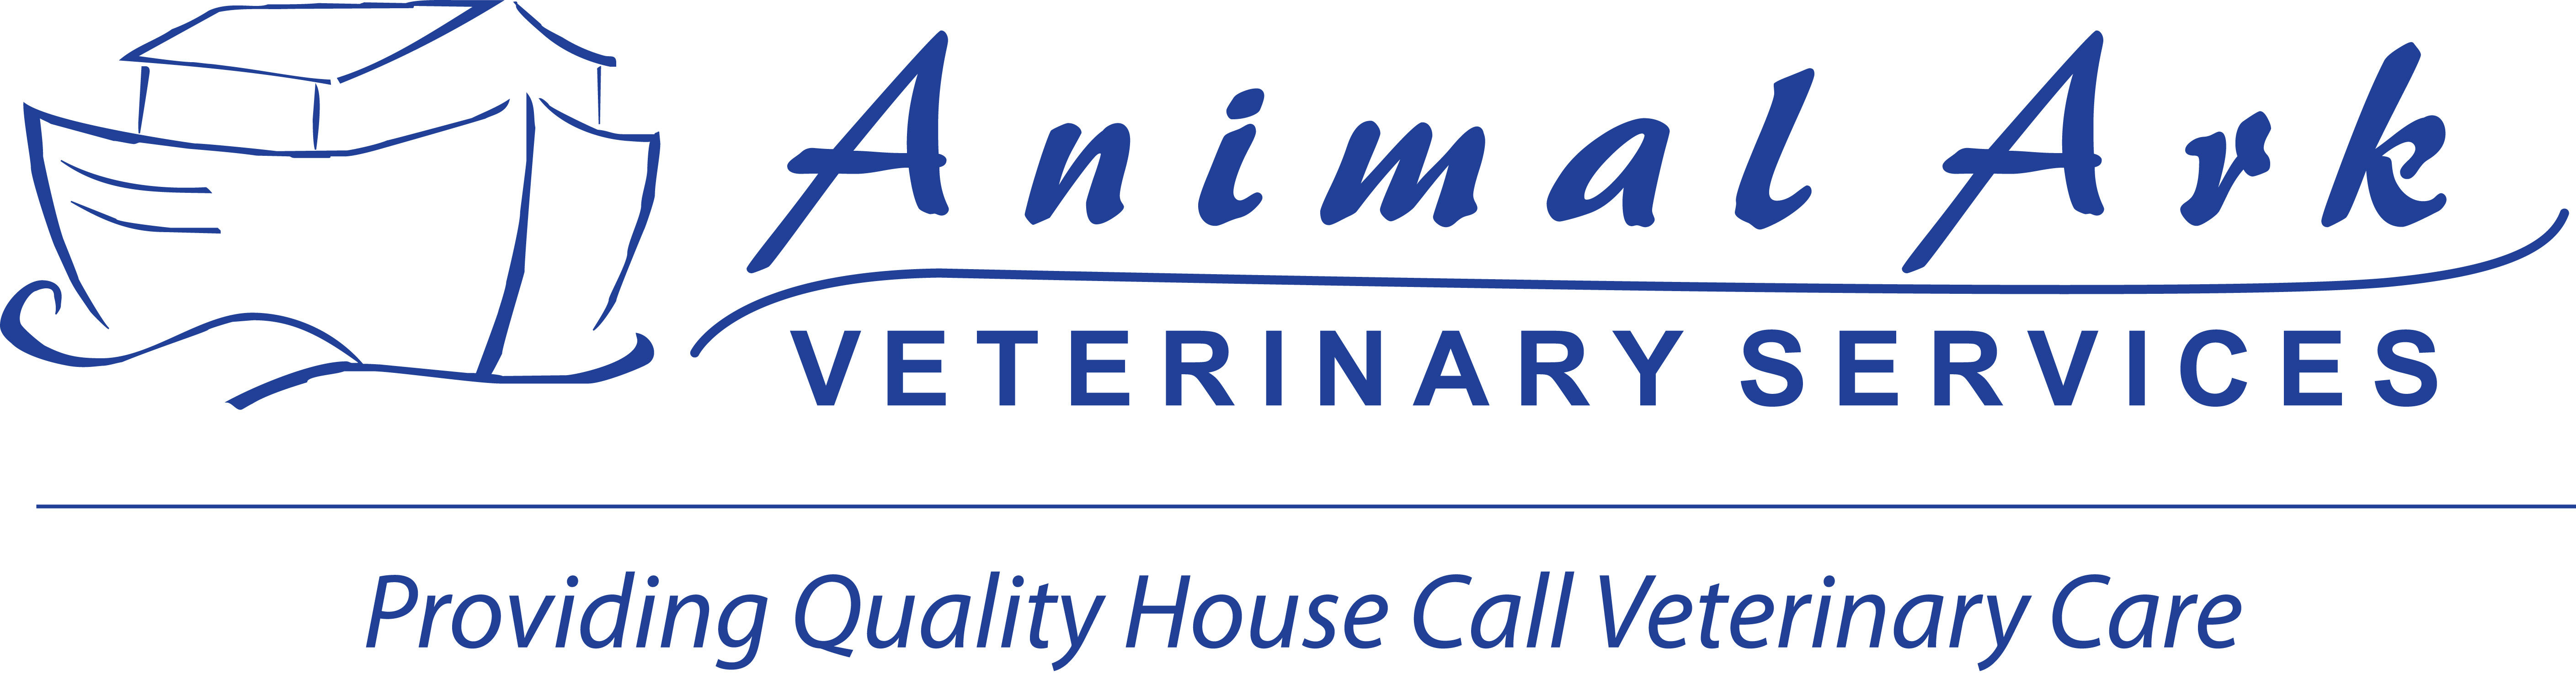 Animal Ark Veterinary Services